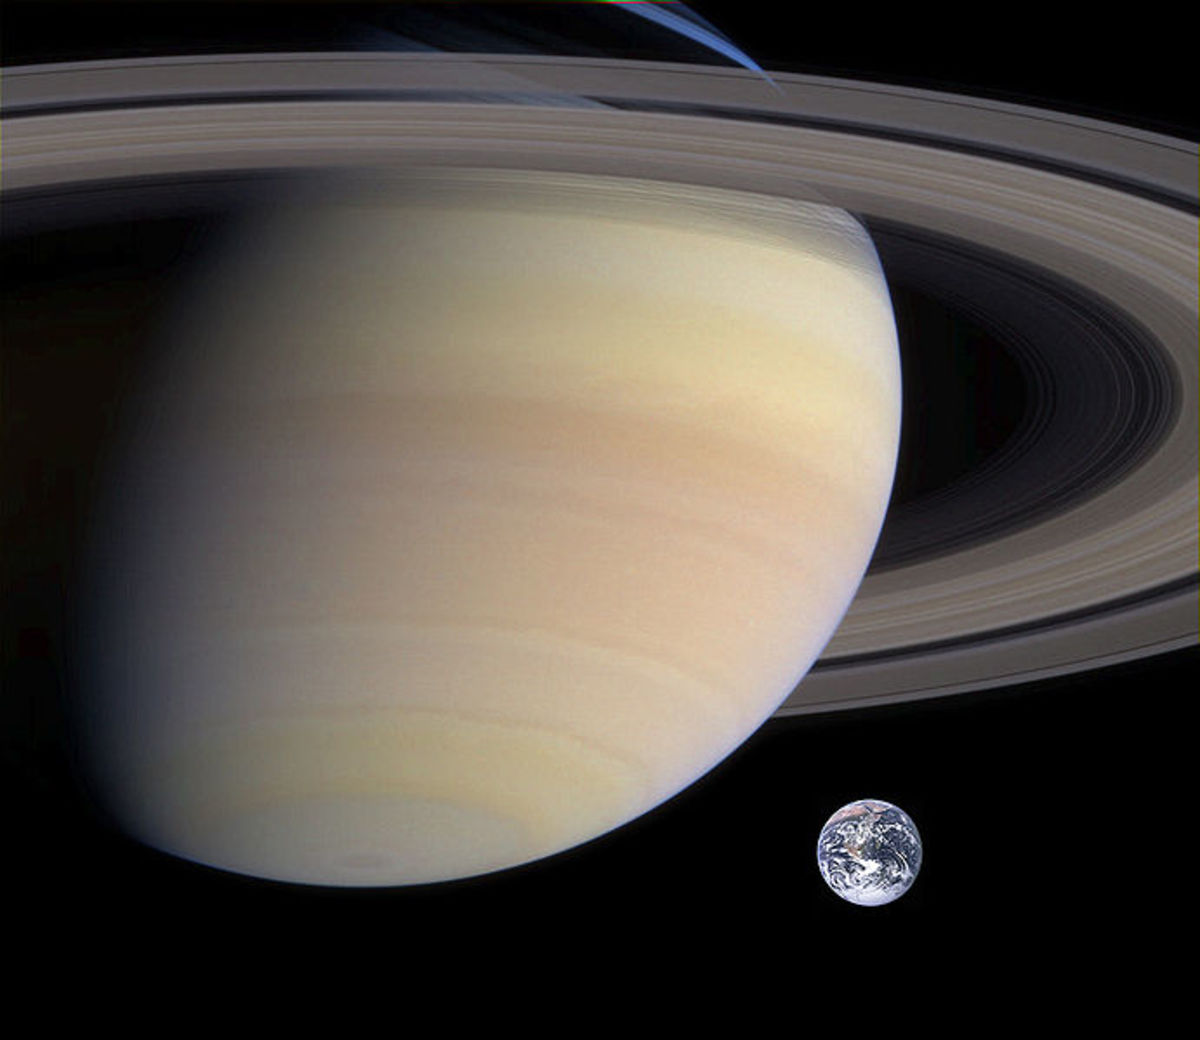 Does the Earth Have Rings Like Saturn's?